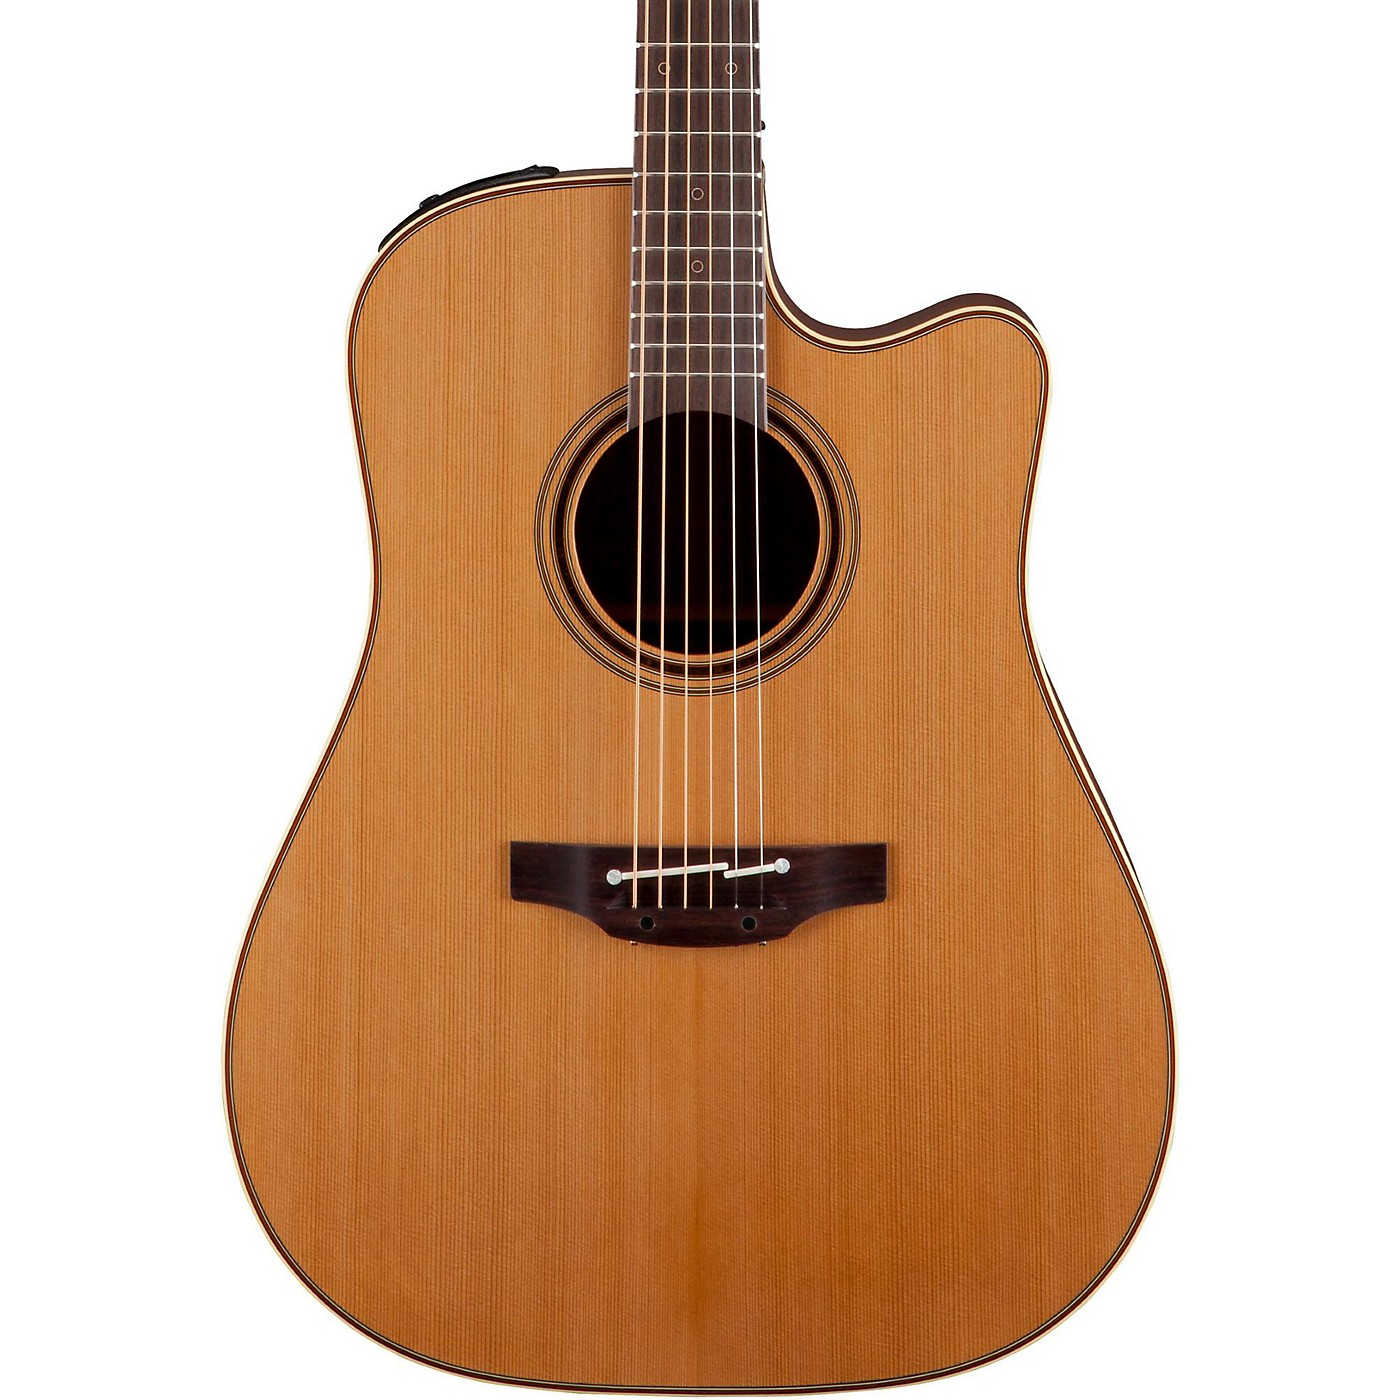 Takamine Pro Series 3 Dreadnought Cutaway Acoustic-Electric Guitar thumbnail